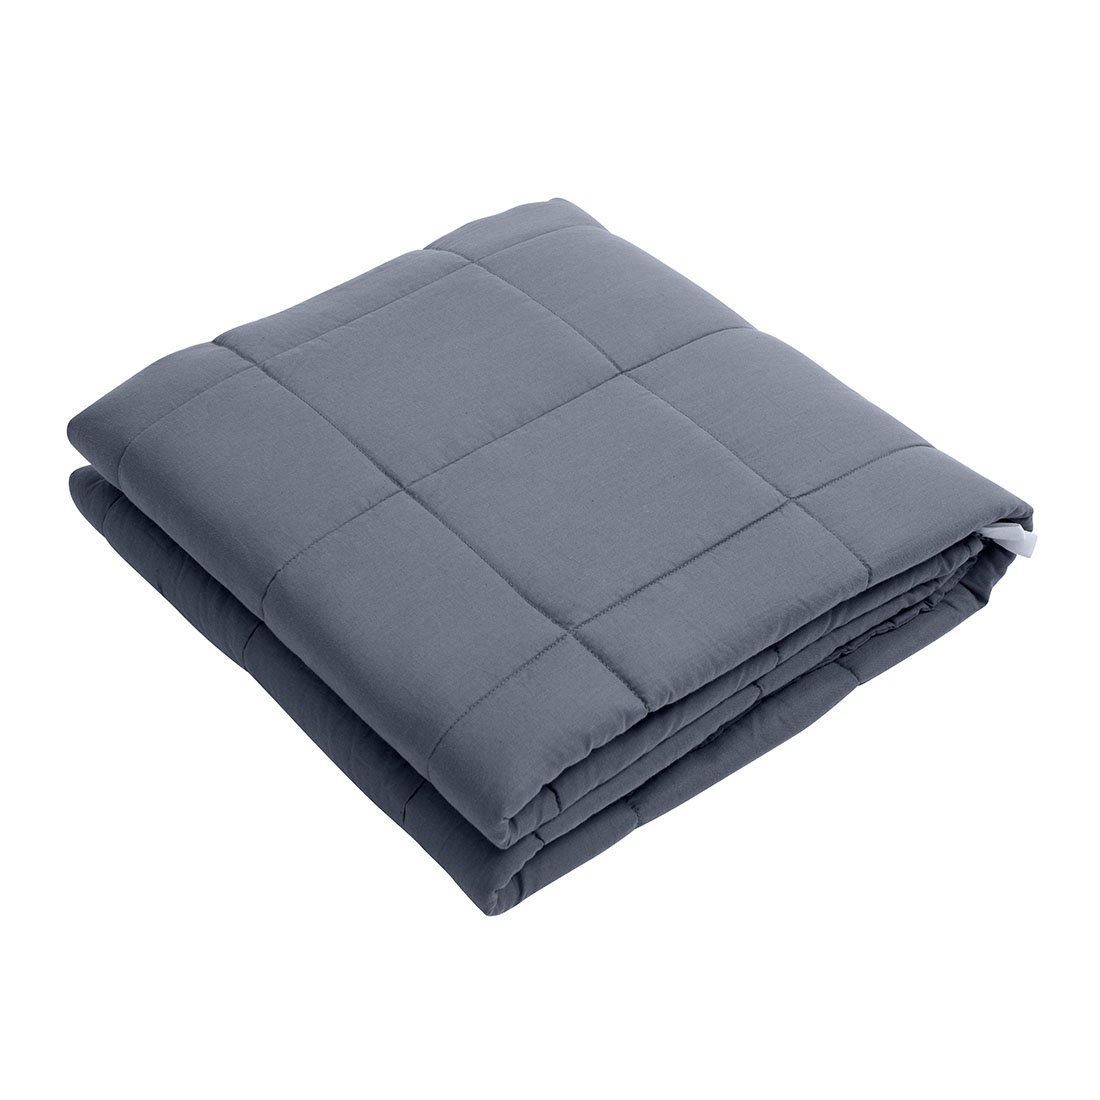 WUCHT Weighted Blanket 5 lbs for Kids Premium Cotton Heavy Blanket (36''x48'') with Glass Beads